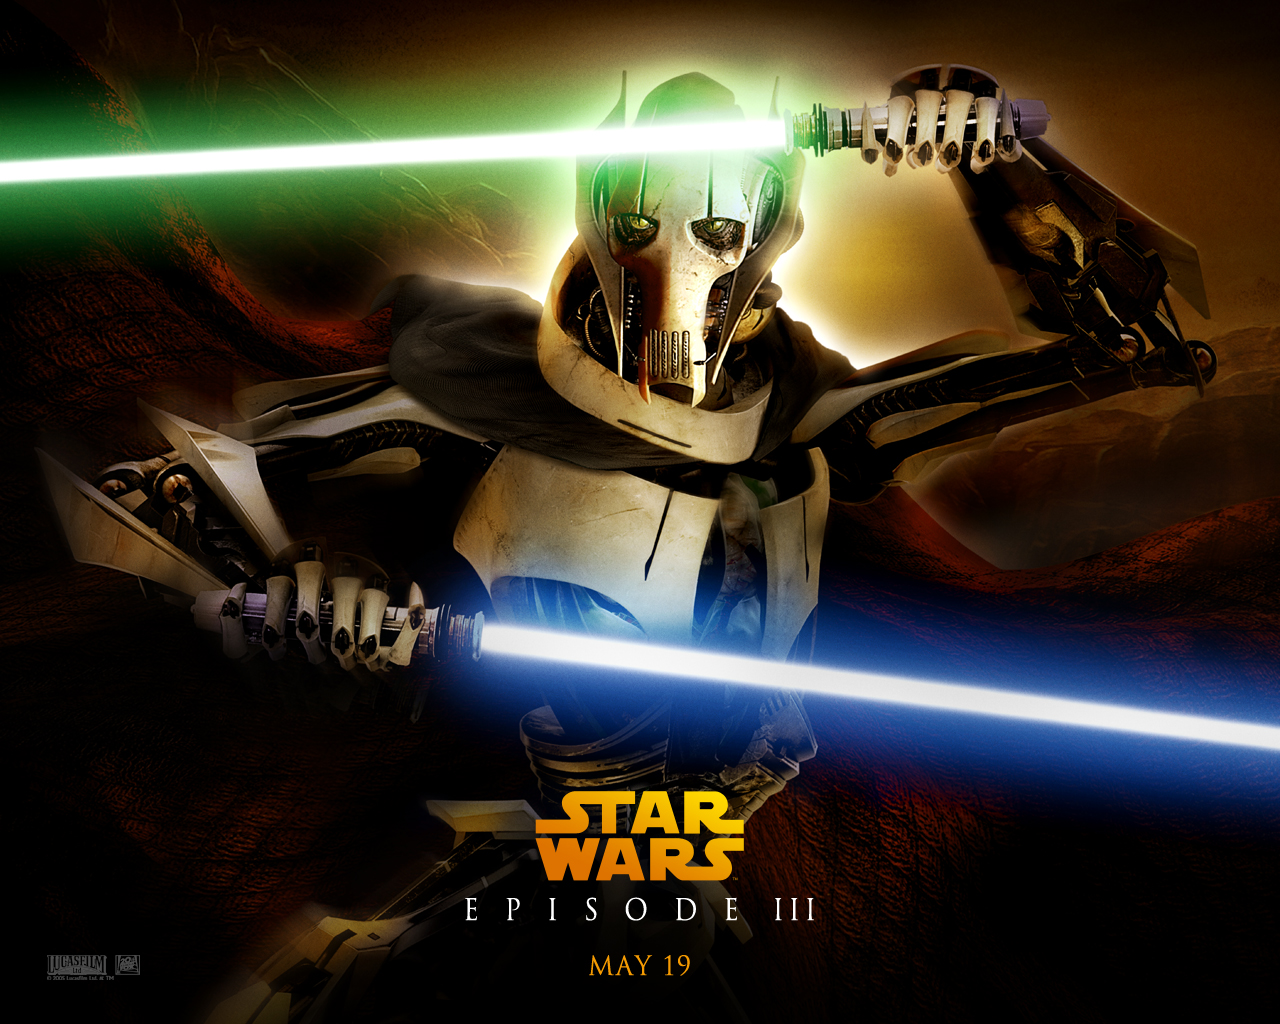 Star Wars Pictures High Resolution